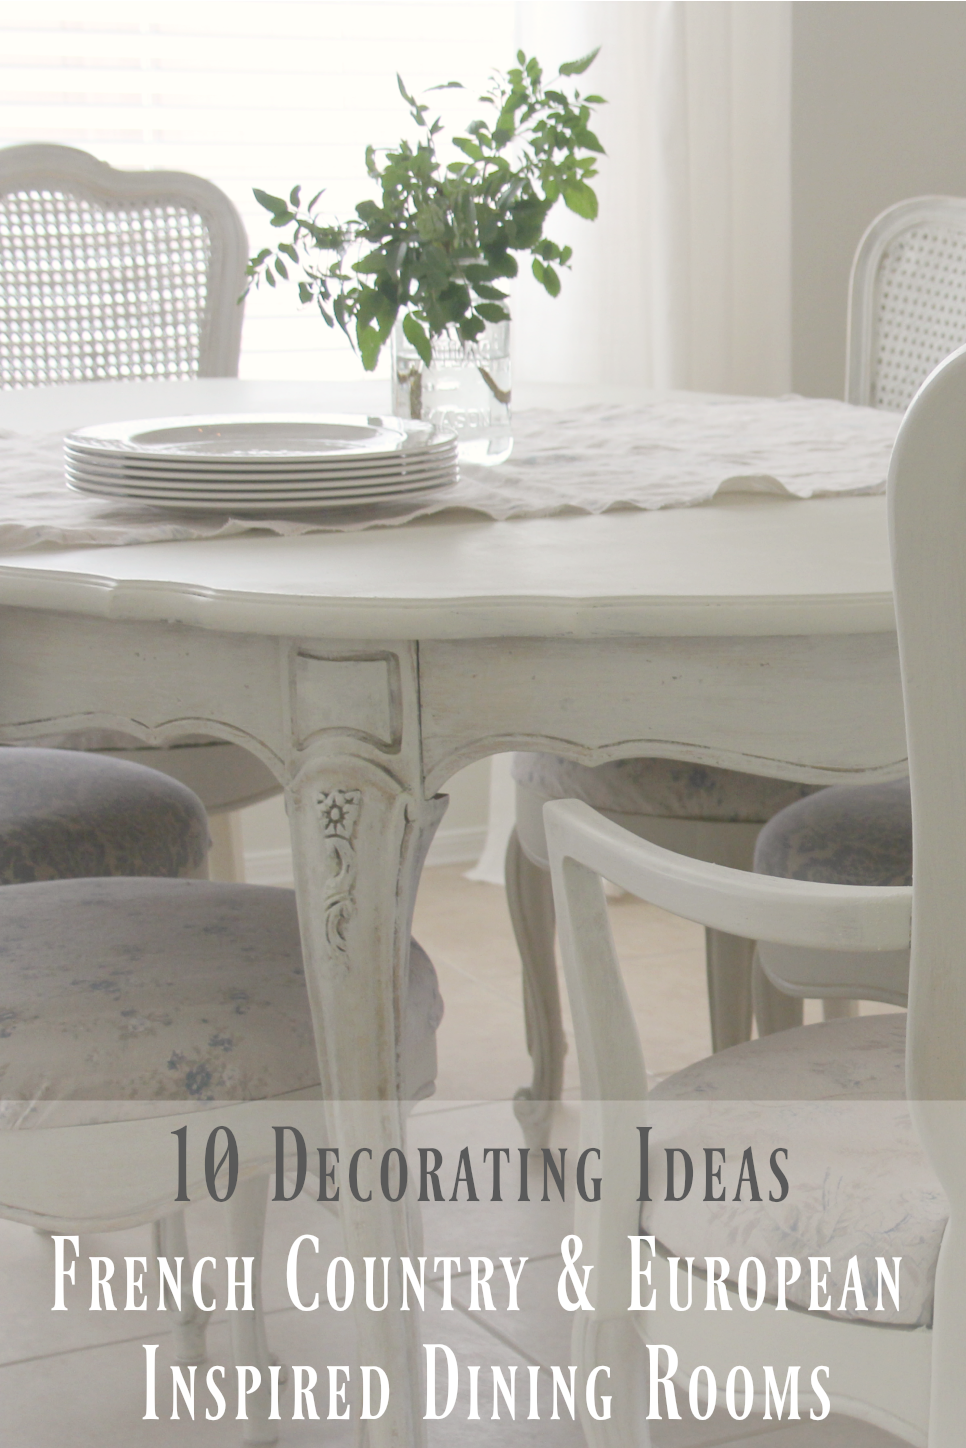 10 Decorating Ideas For French Country And European Inspired Dining Rooms  ...